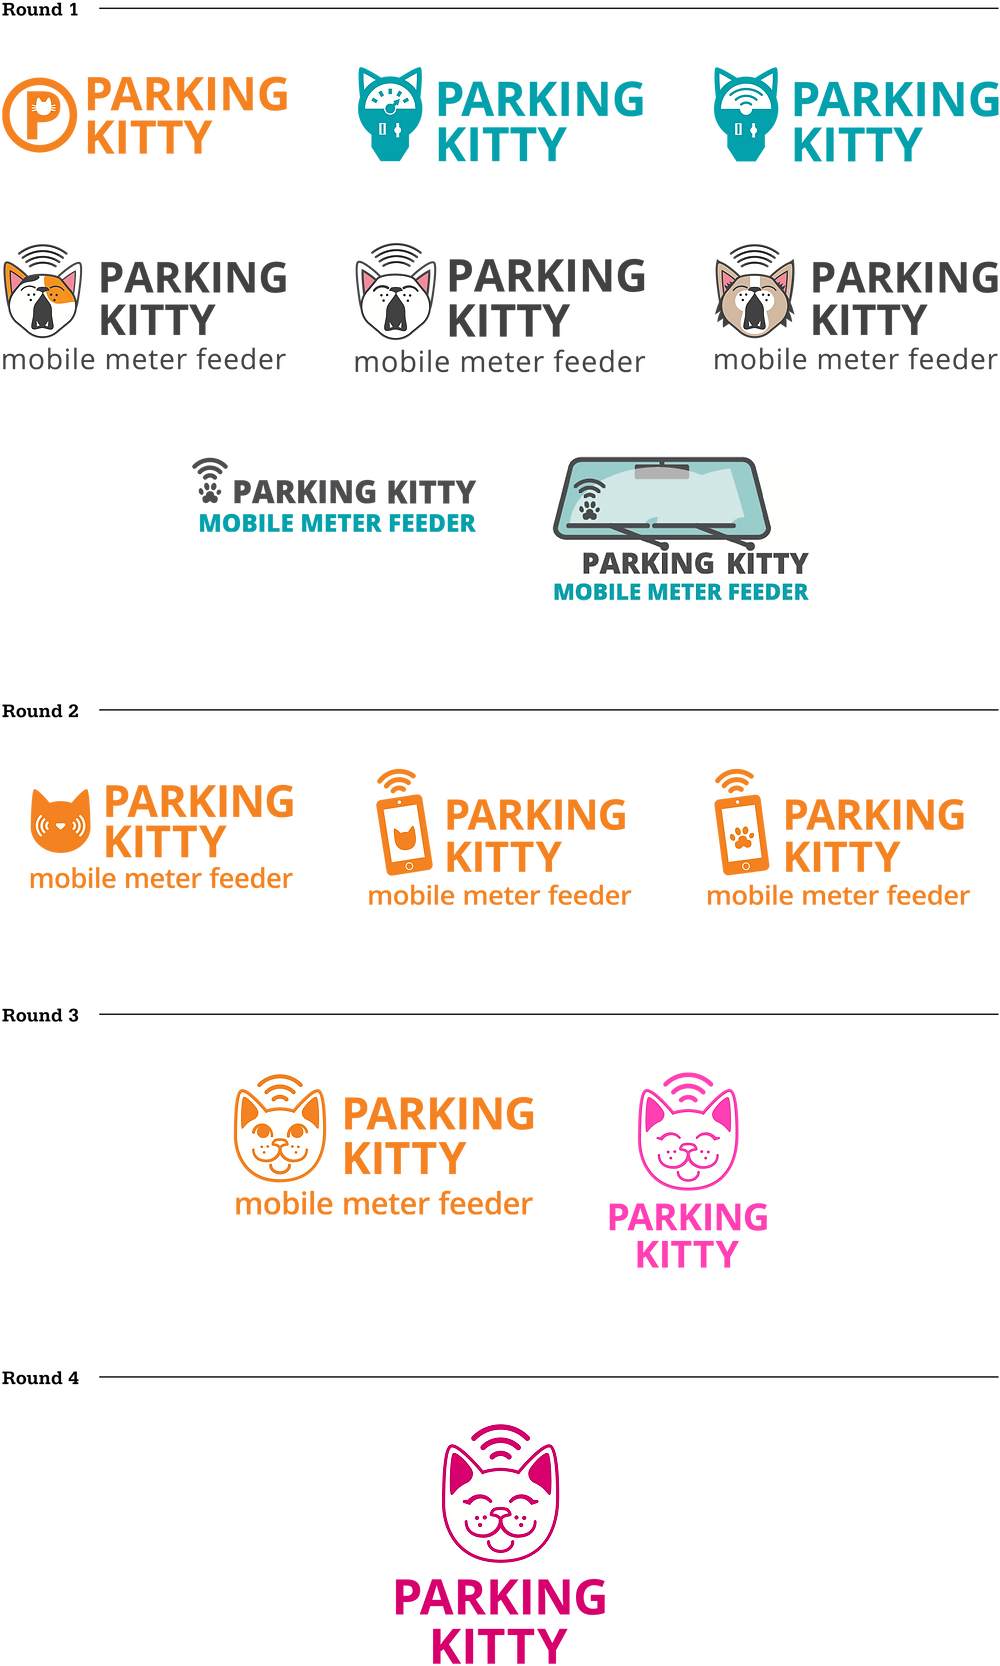 Evolution of Parking Kitty Graphic